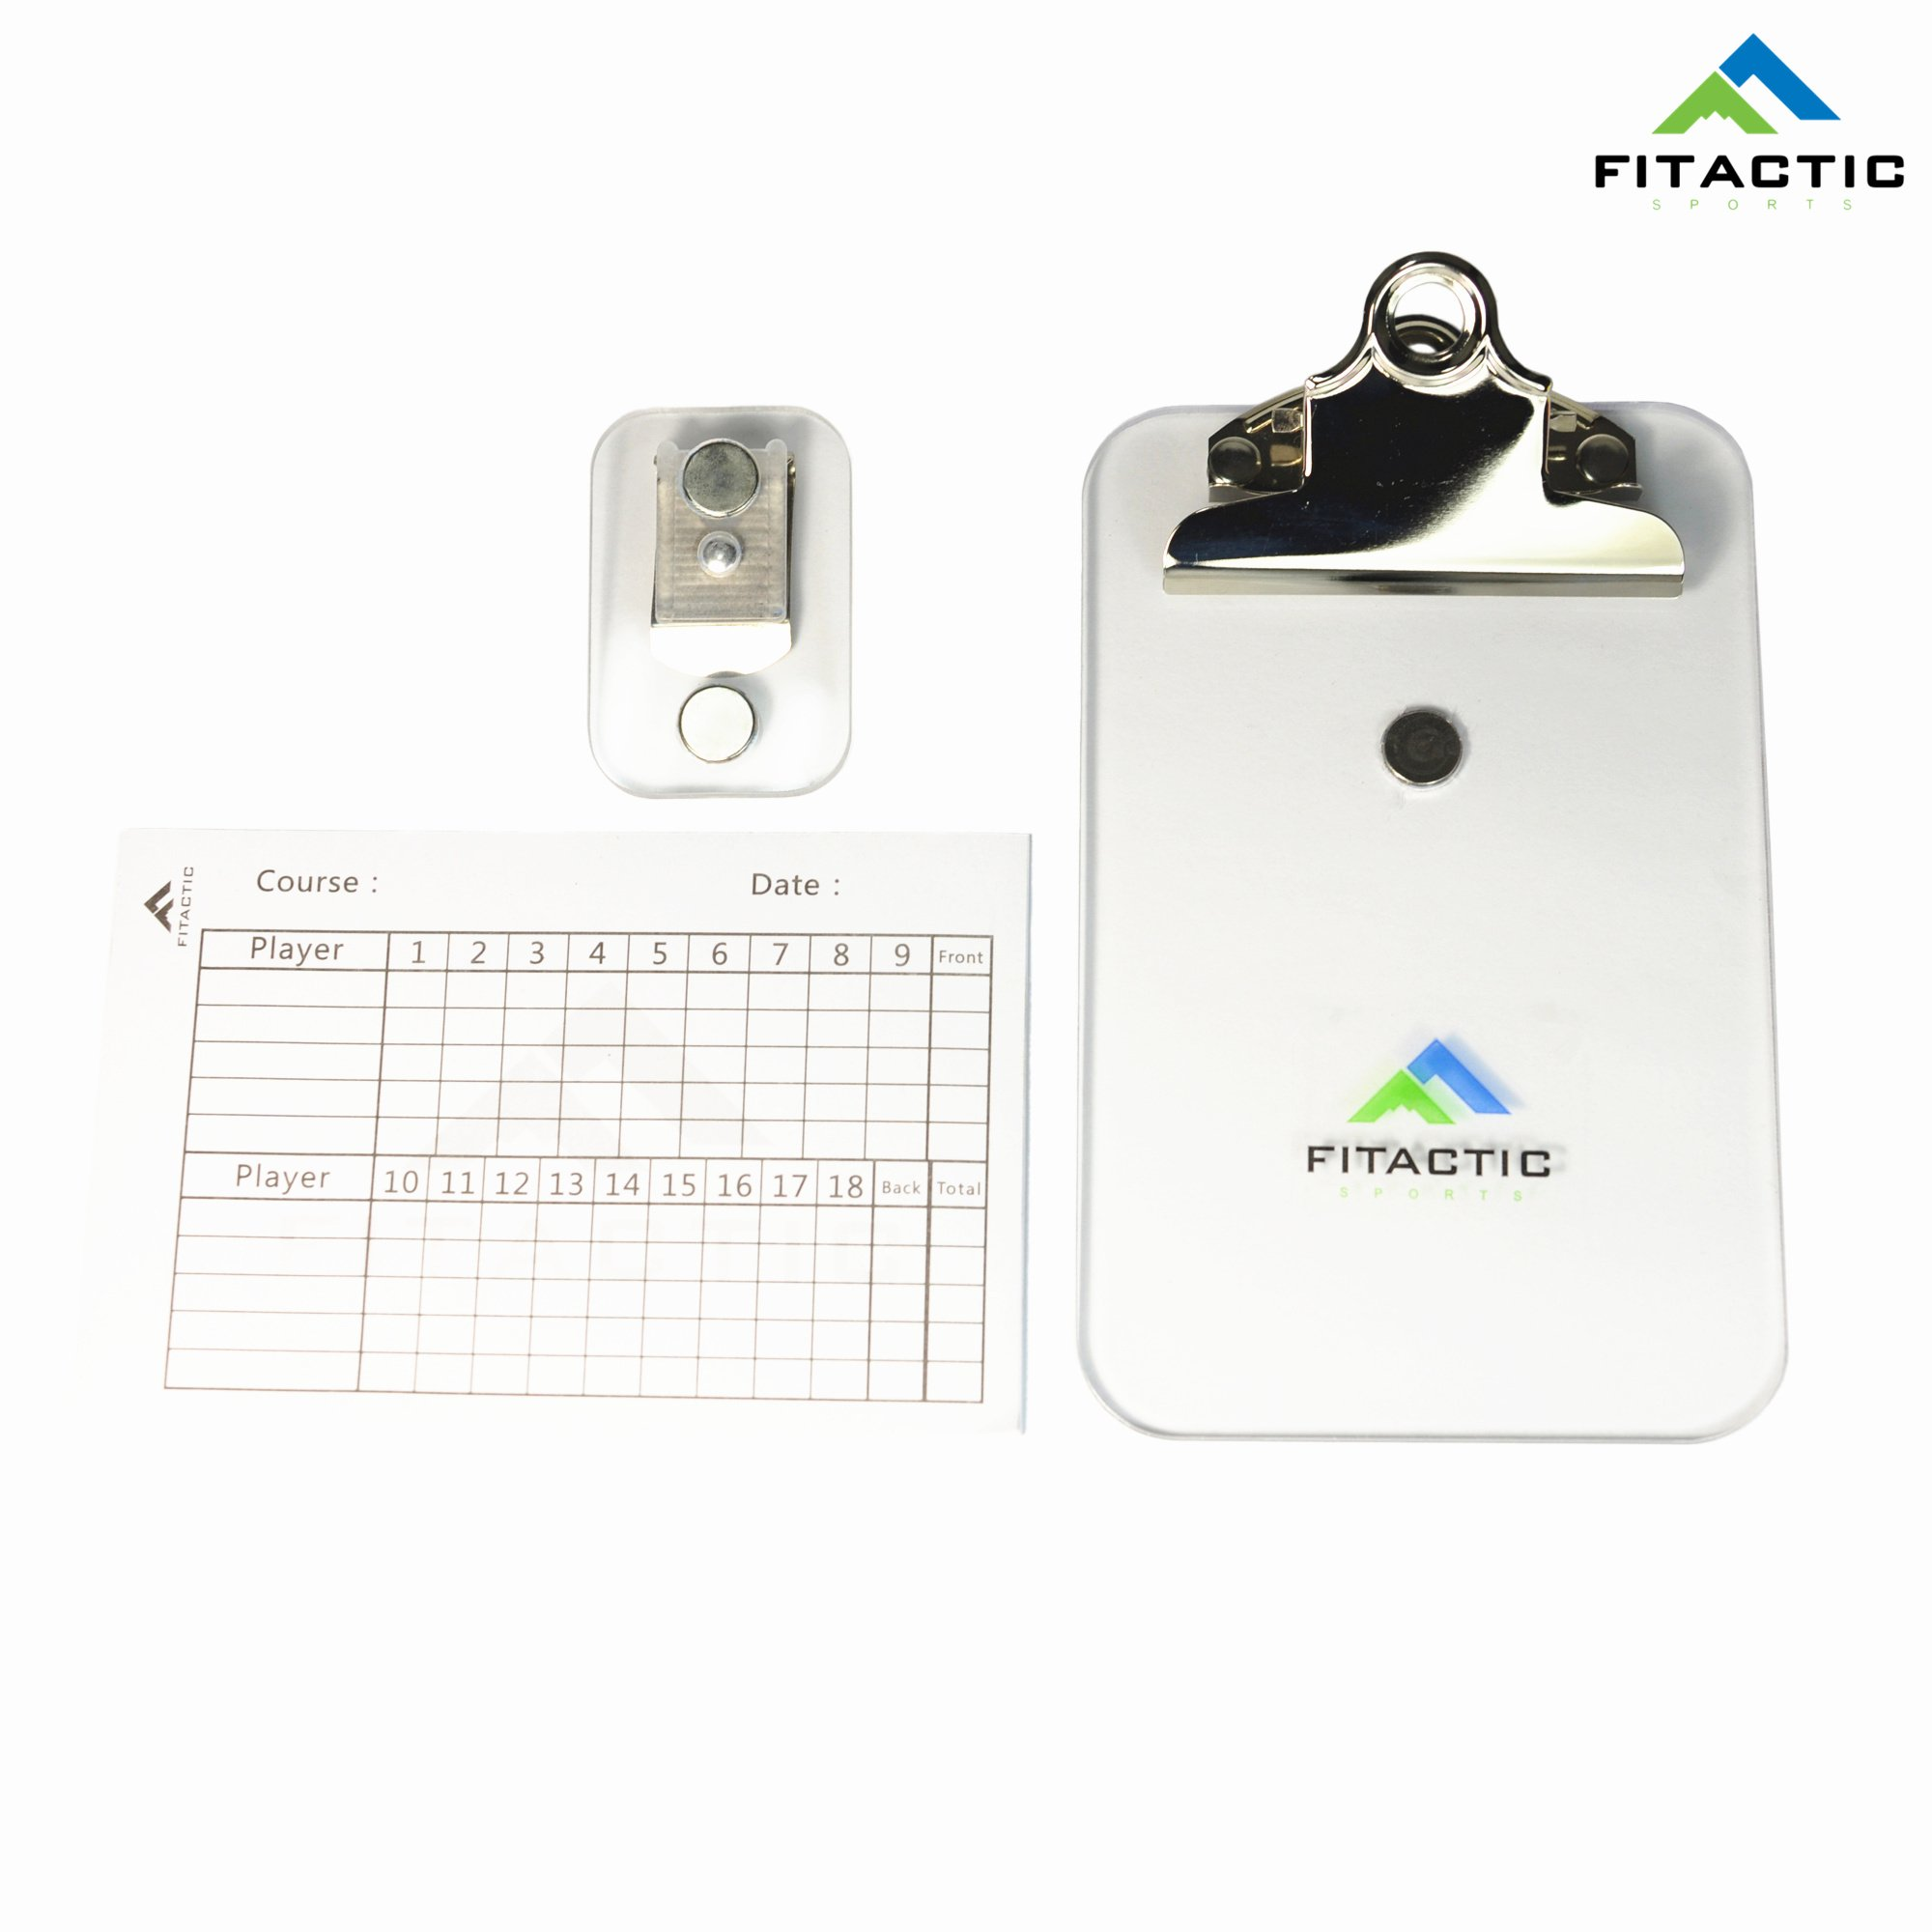 FITactic Magnetic Detachable Golf Scoreboard Clipboard Scorecard Holder with Score Sheet for Golf, Disc Golf, Frisbee by FITactic